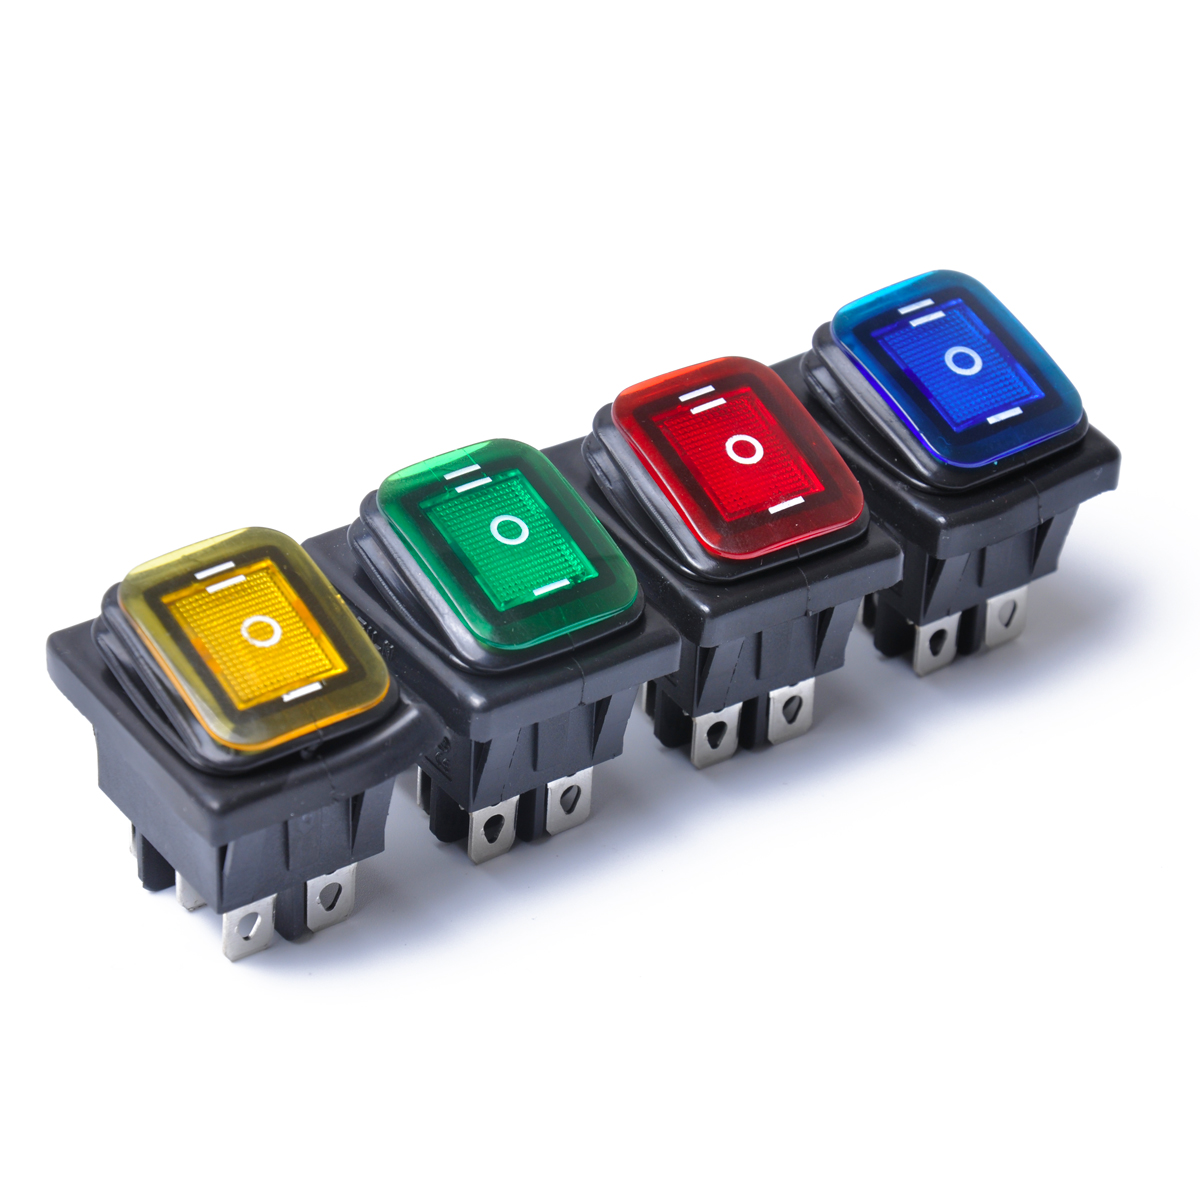 Marine Hardware Automobiles & Motorcycles Rocker Toggle Switch On-off-on 4 Pins 12v Dc Car Boat Automobiles Waterproof Led Latching Switches